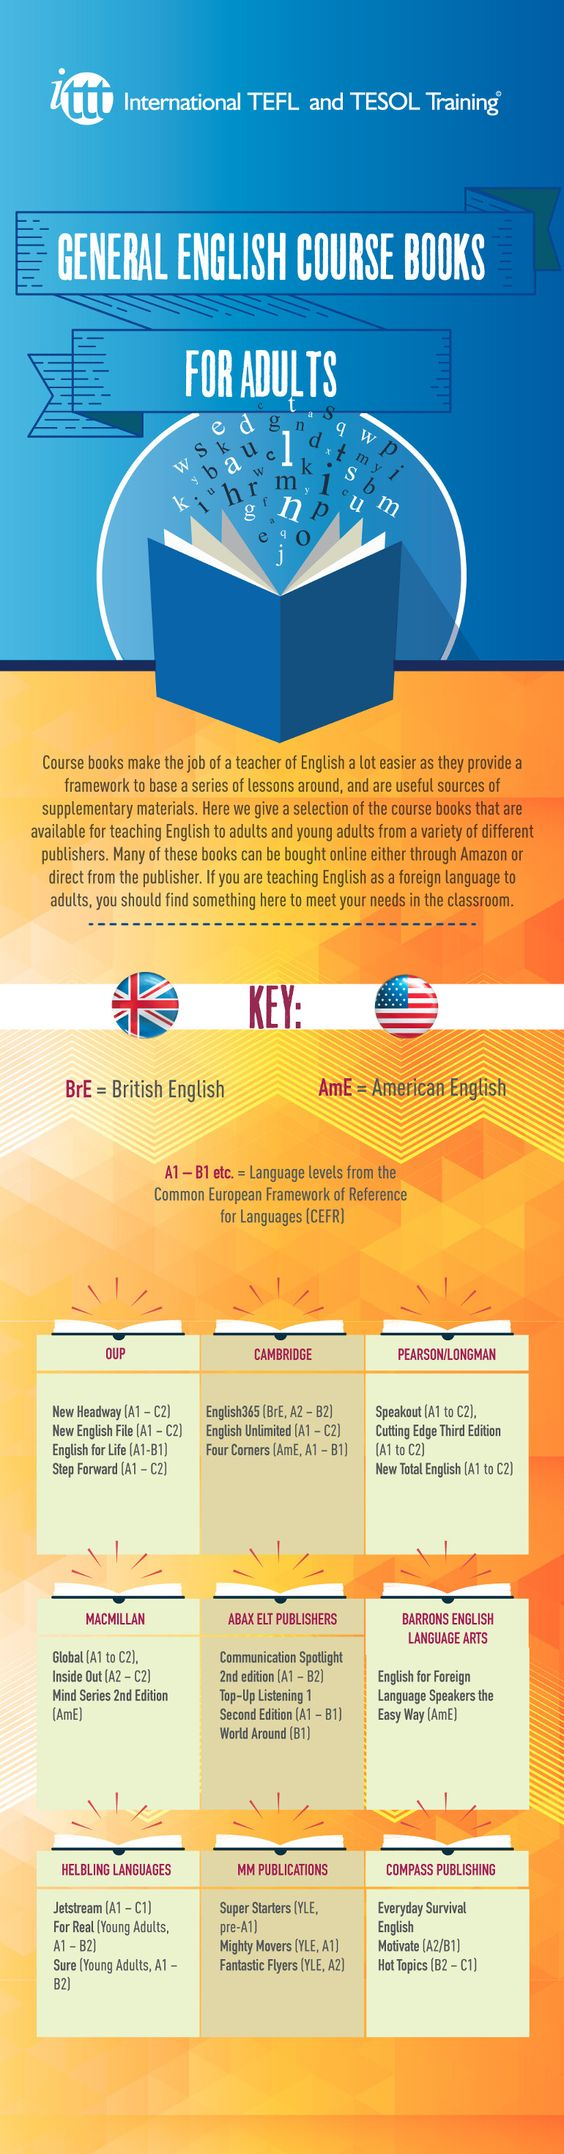 Infographic General English Course Books for Adults